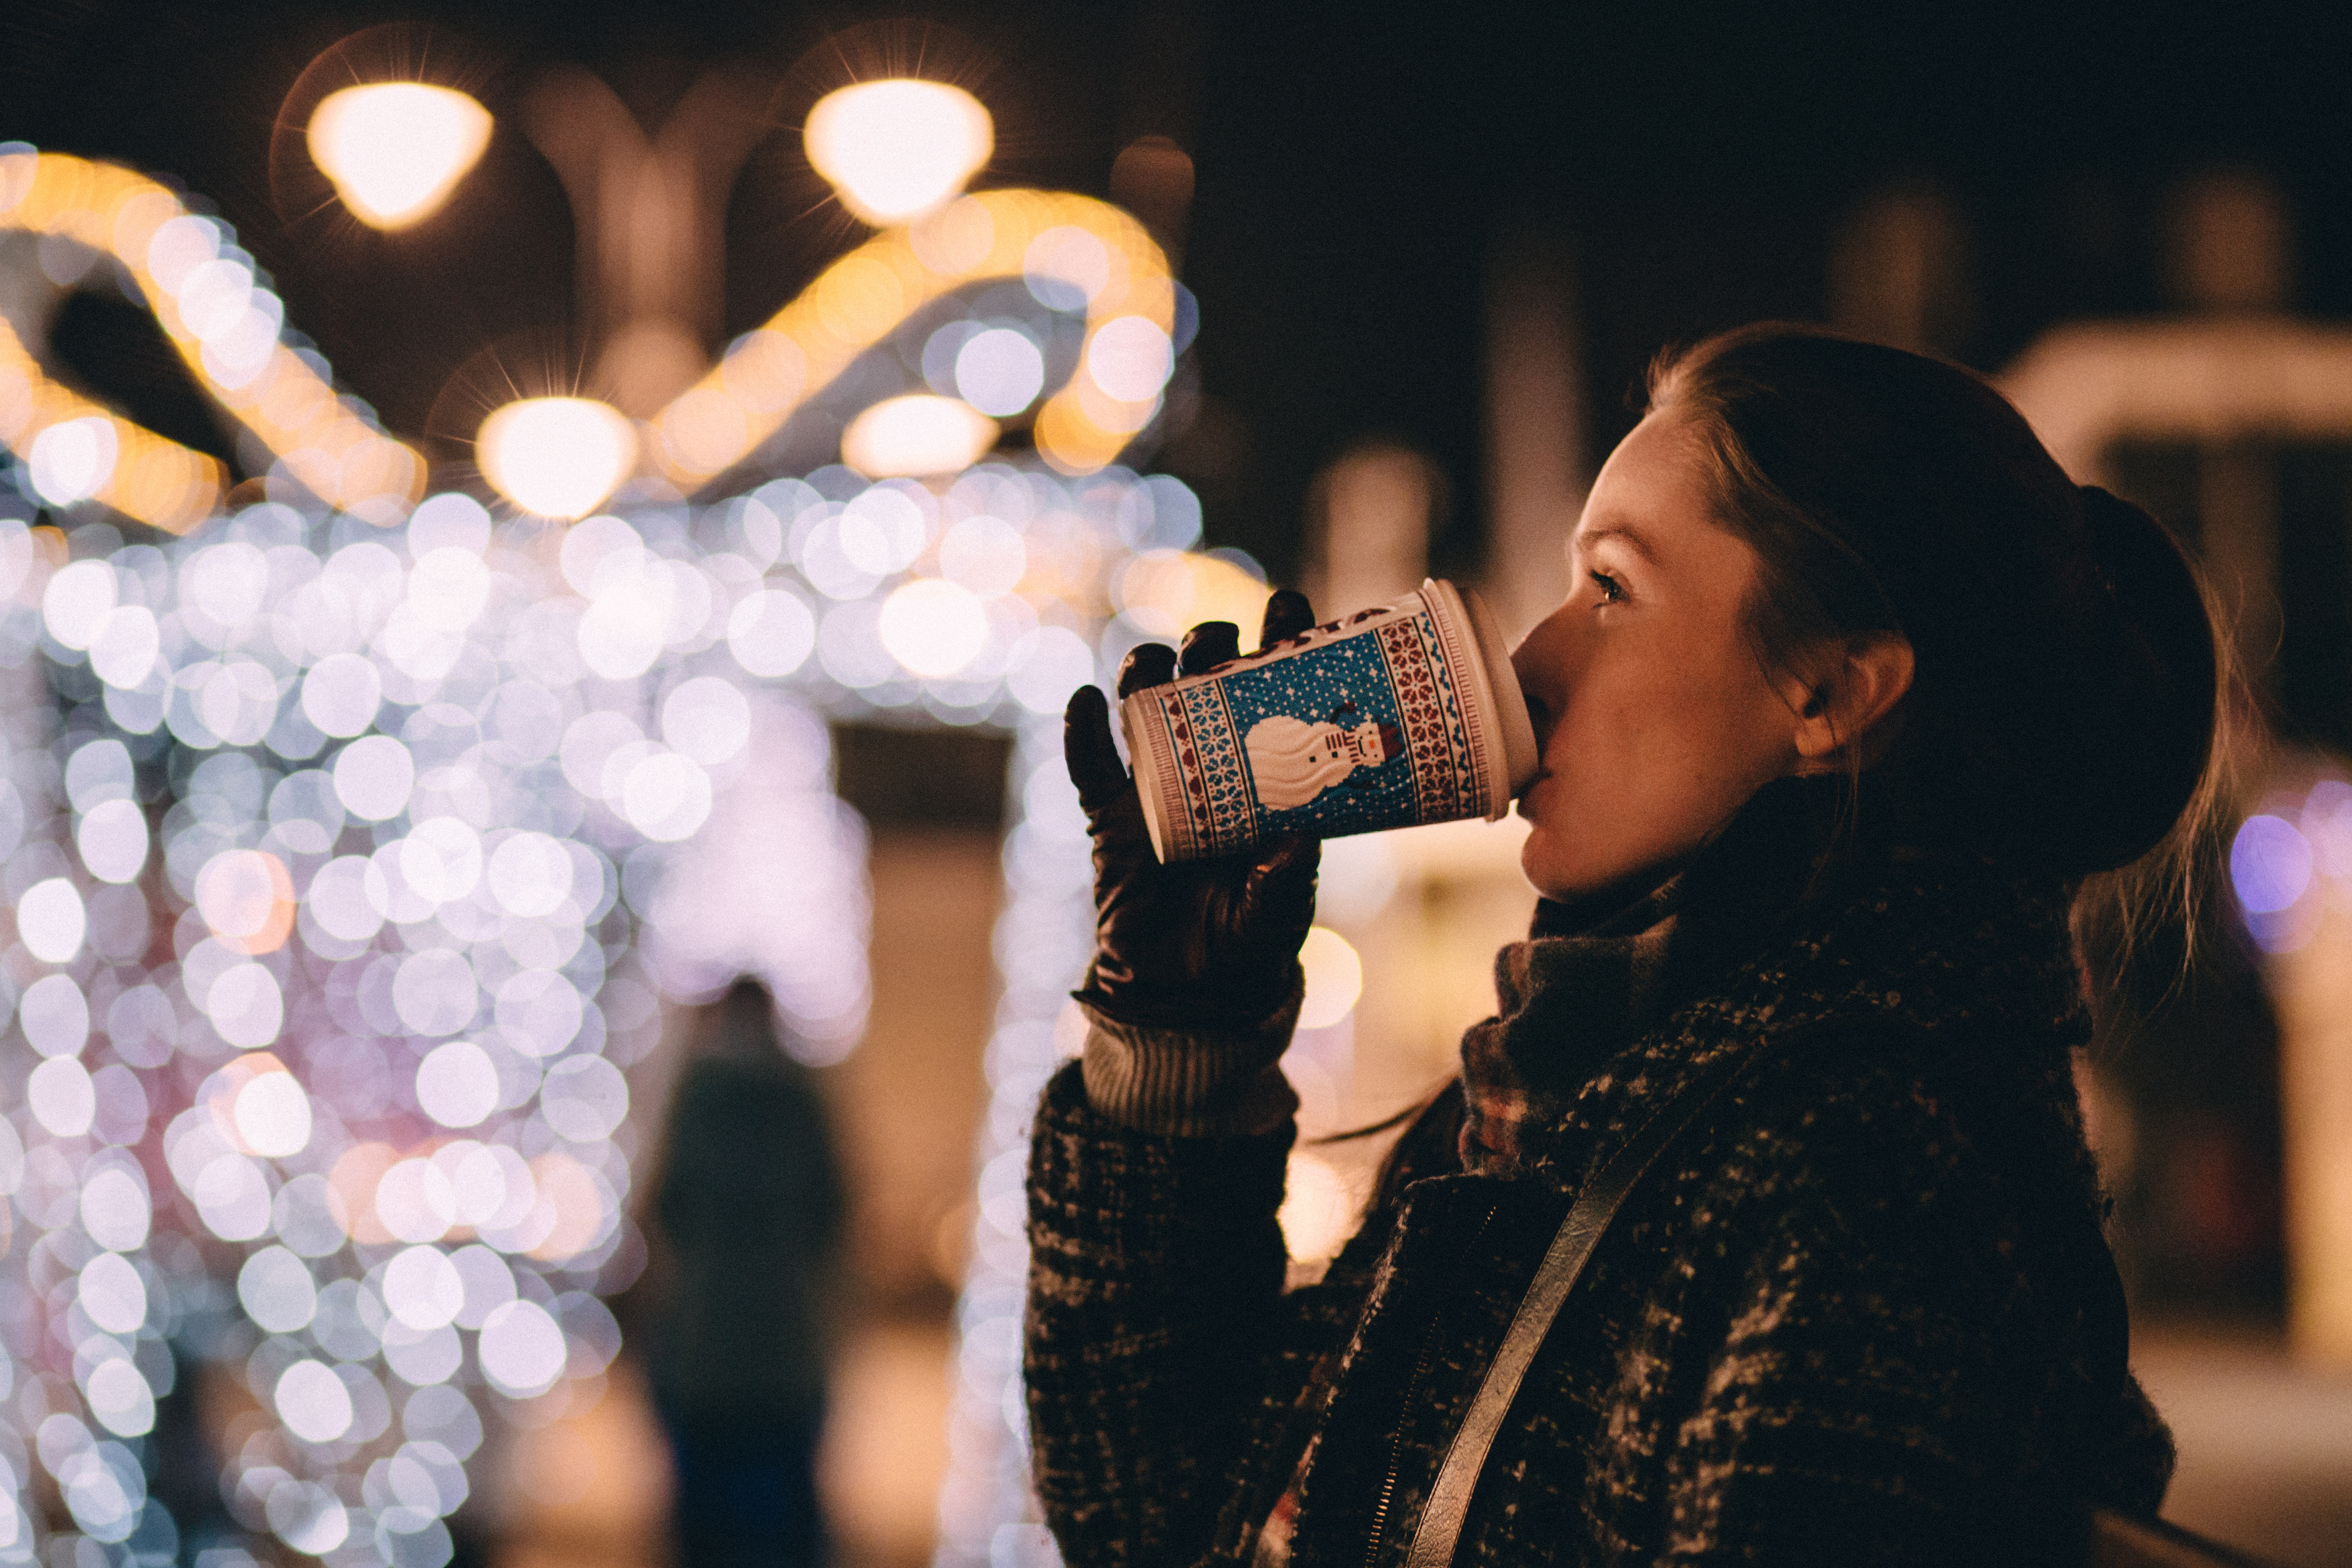 Woman admires christmas lights while sipping a hot beverage.